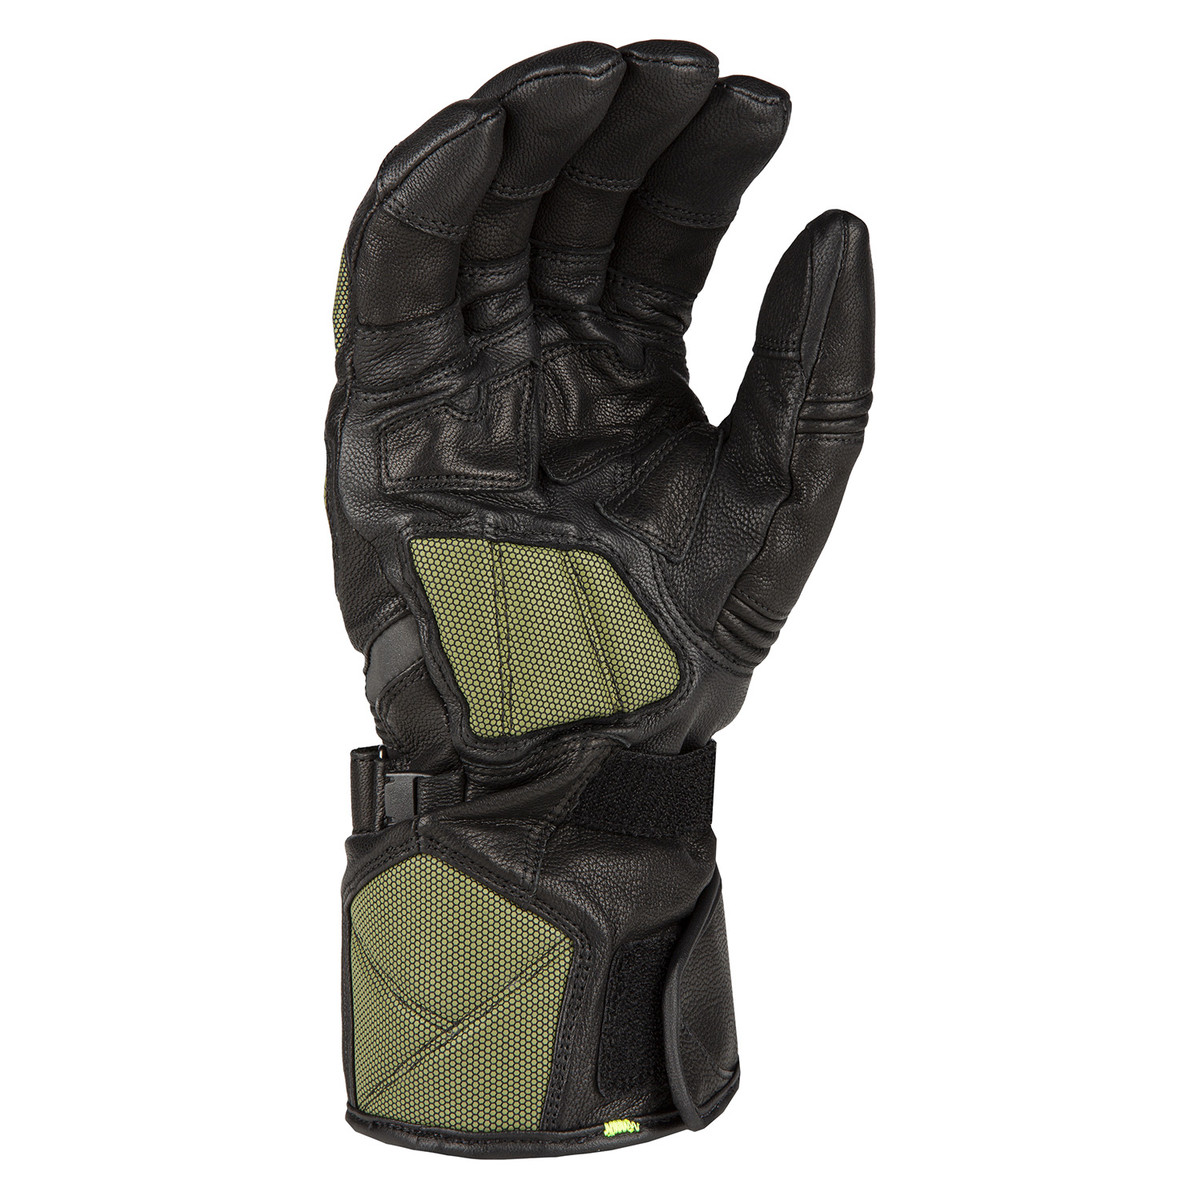 Badlands GTX Glove Sage Back